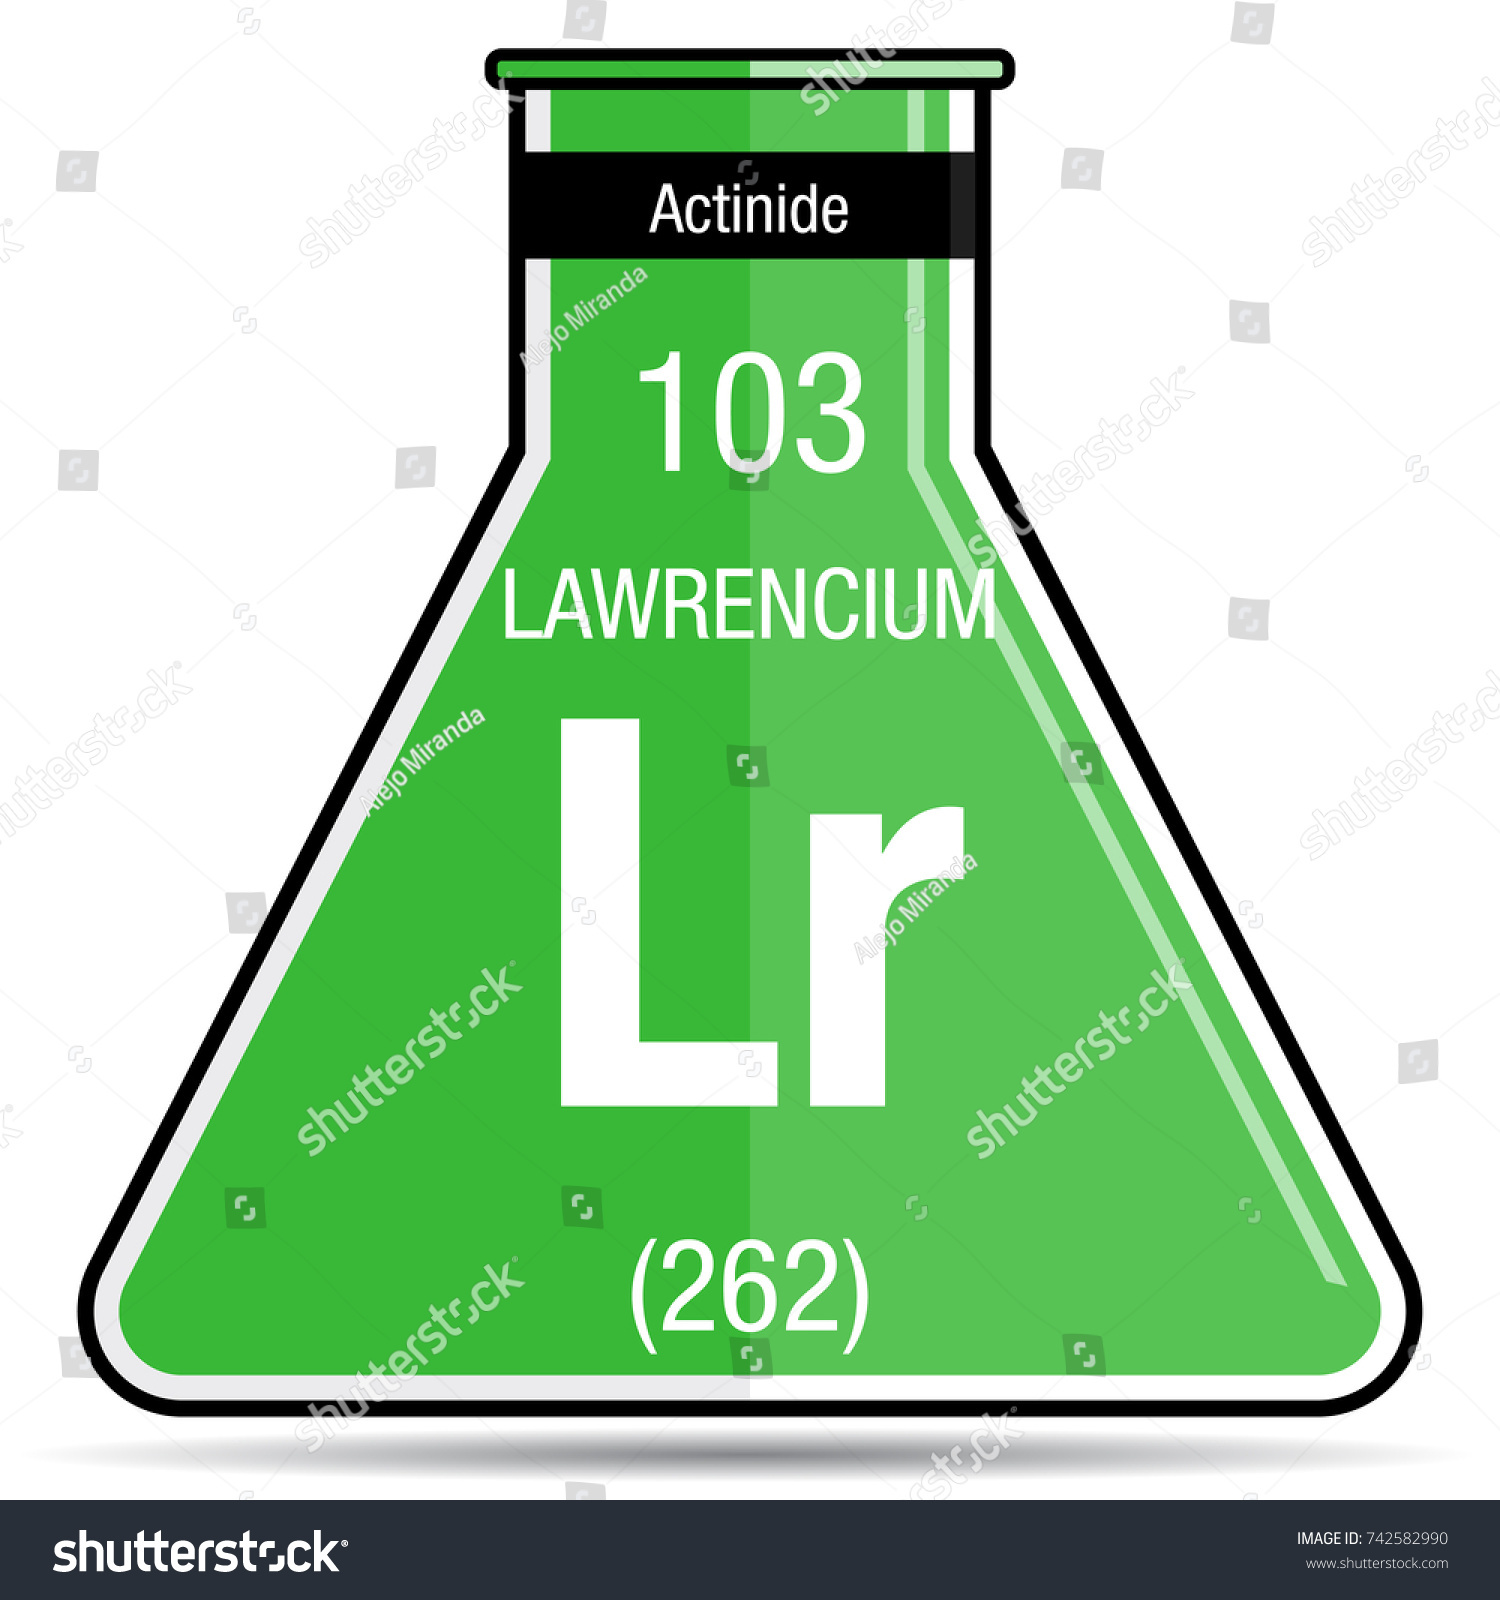 Lawrencium Symbol On Chemical Flask Element Stock Vector ...